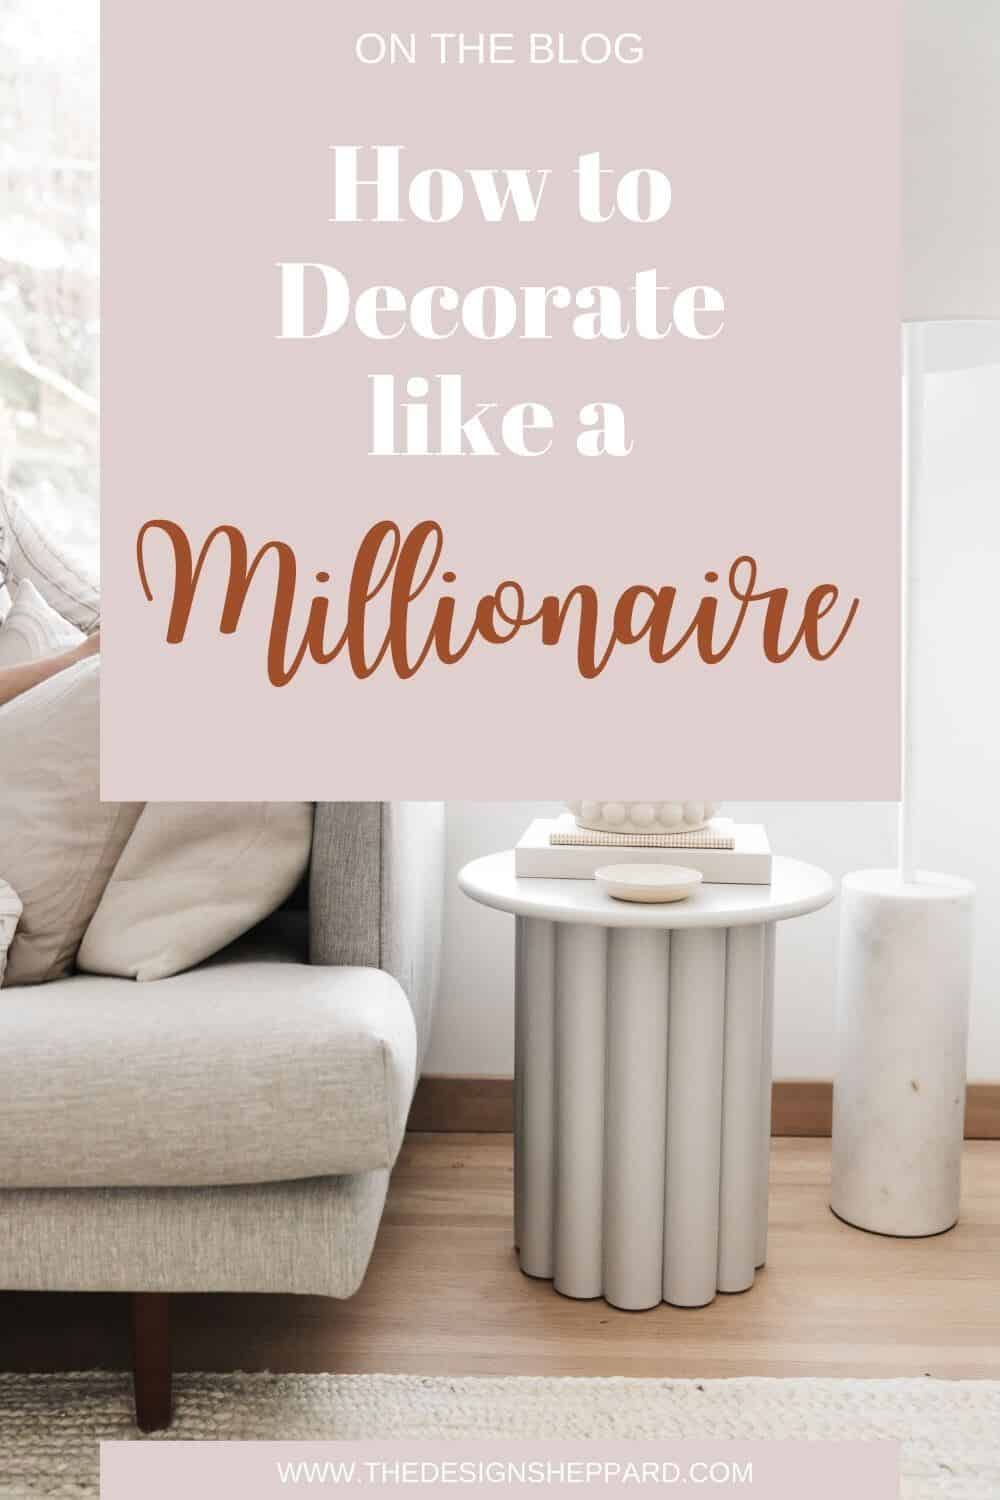 How to decorate like a Millionaire